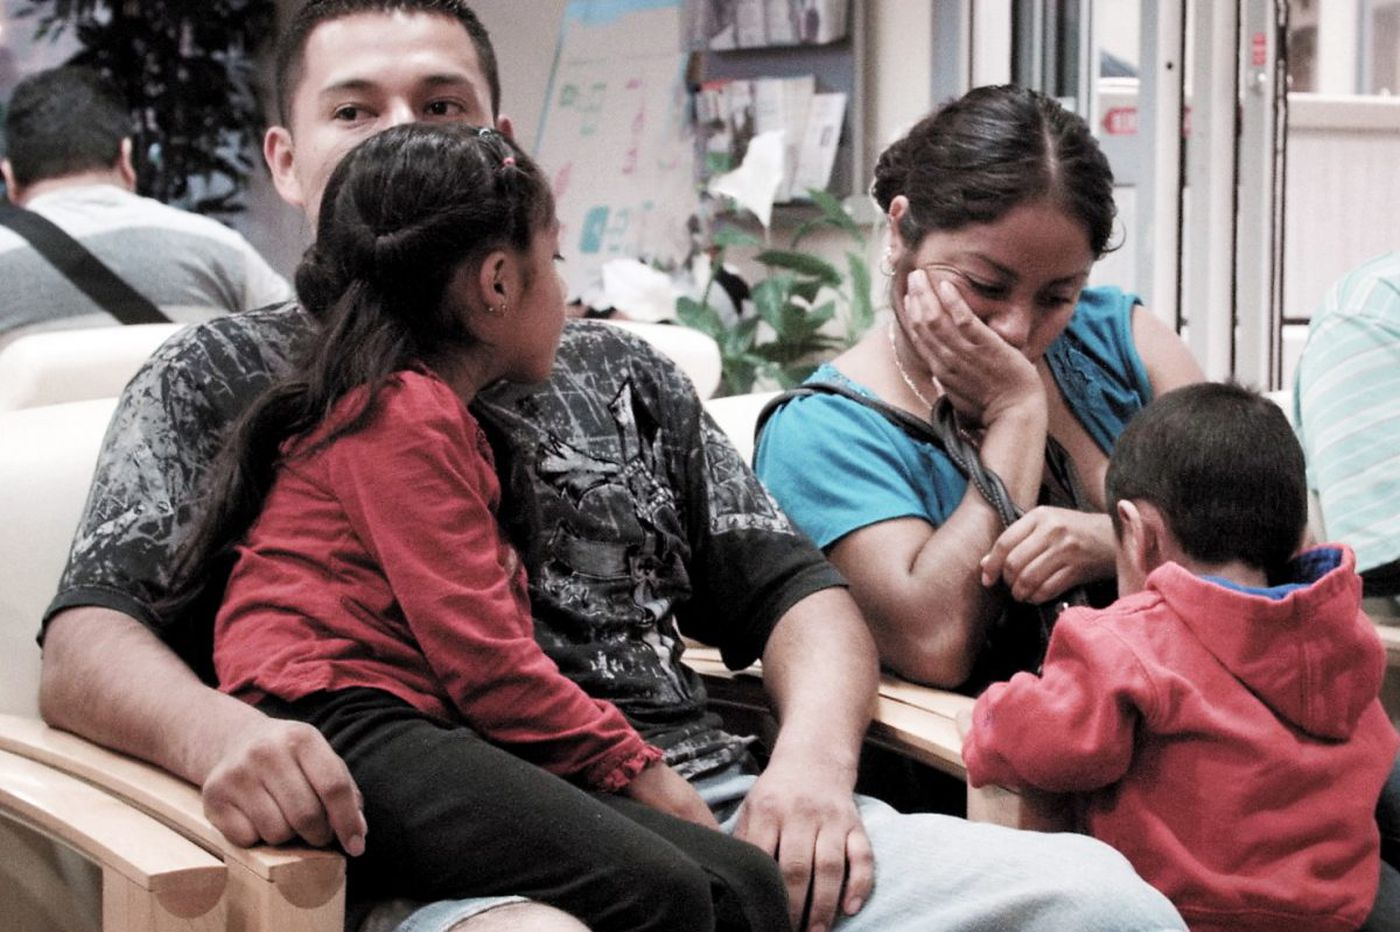 Opinion: Confining immigrant children on military bases is unnecessary cruelty